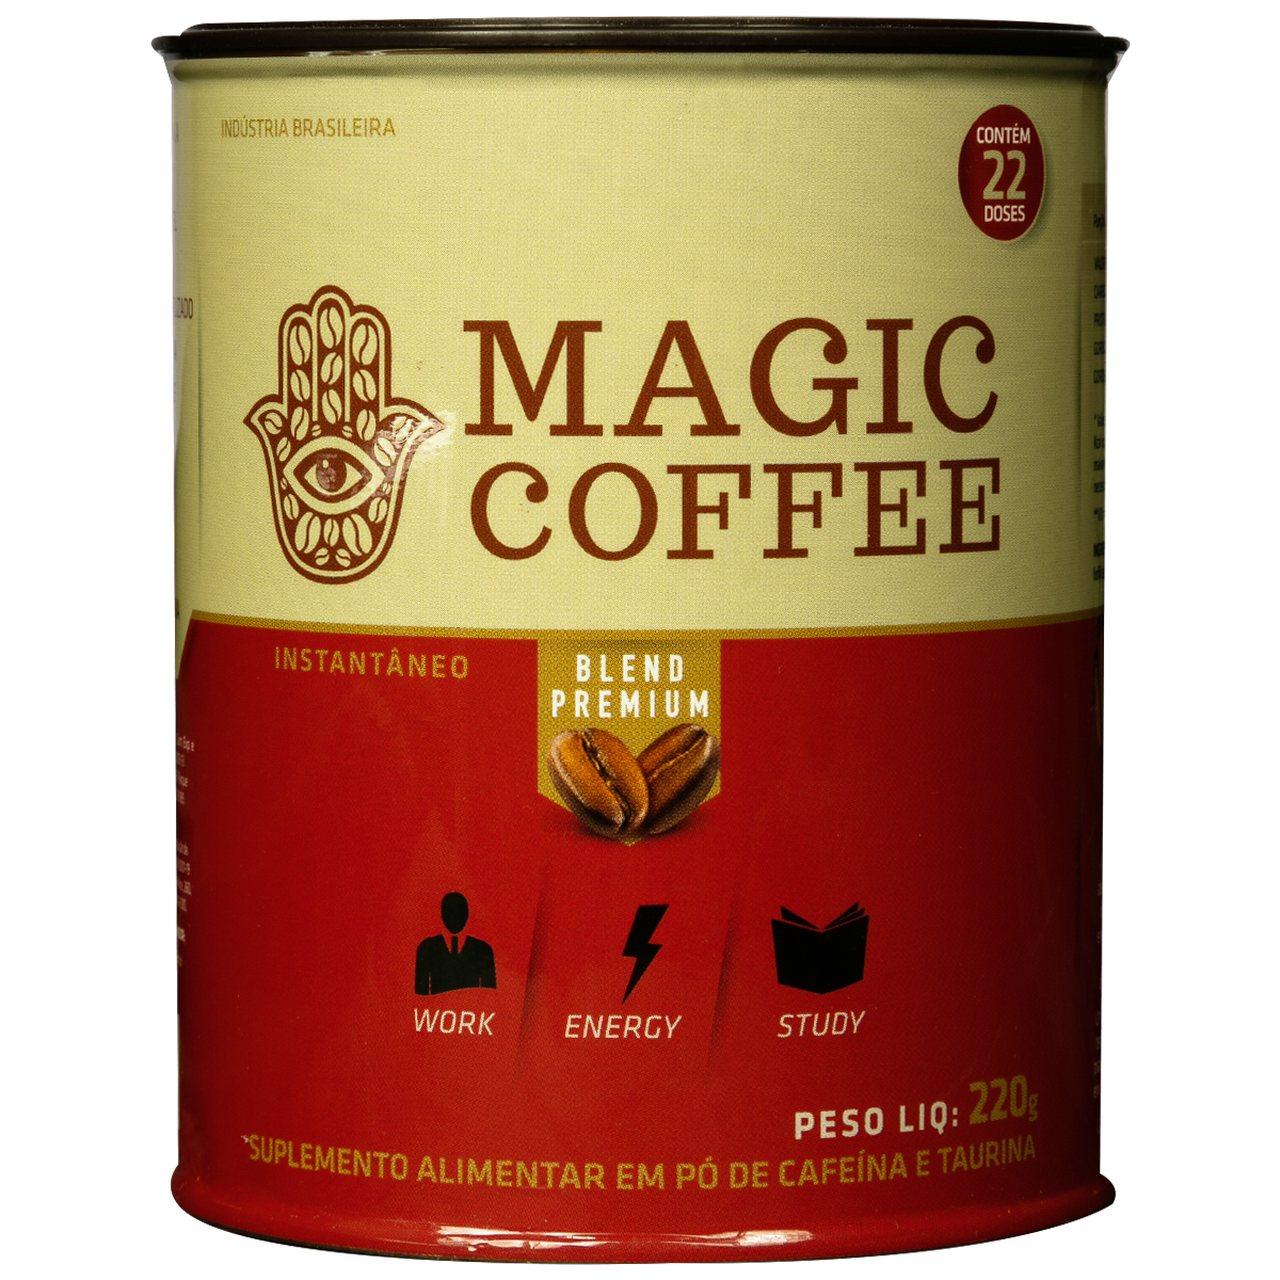 TERMO COFFEE MAGIC COFFE - 200GR - 22 DOSES